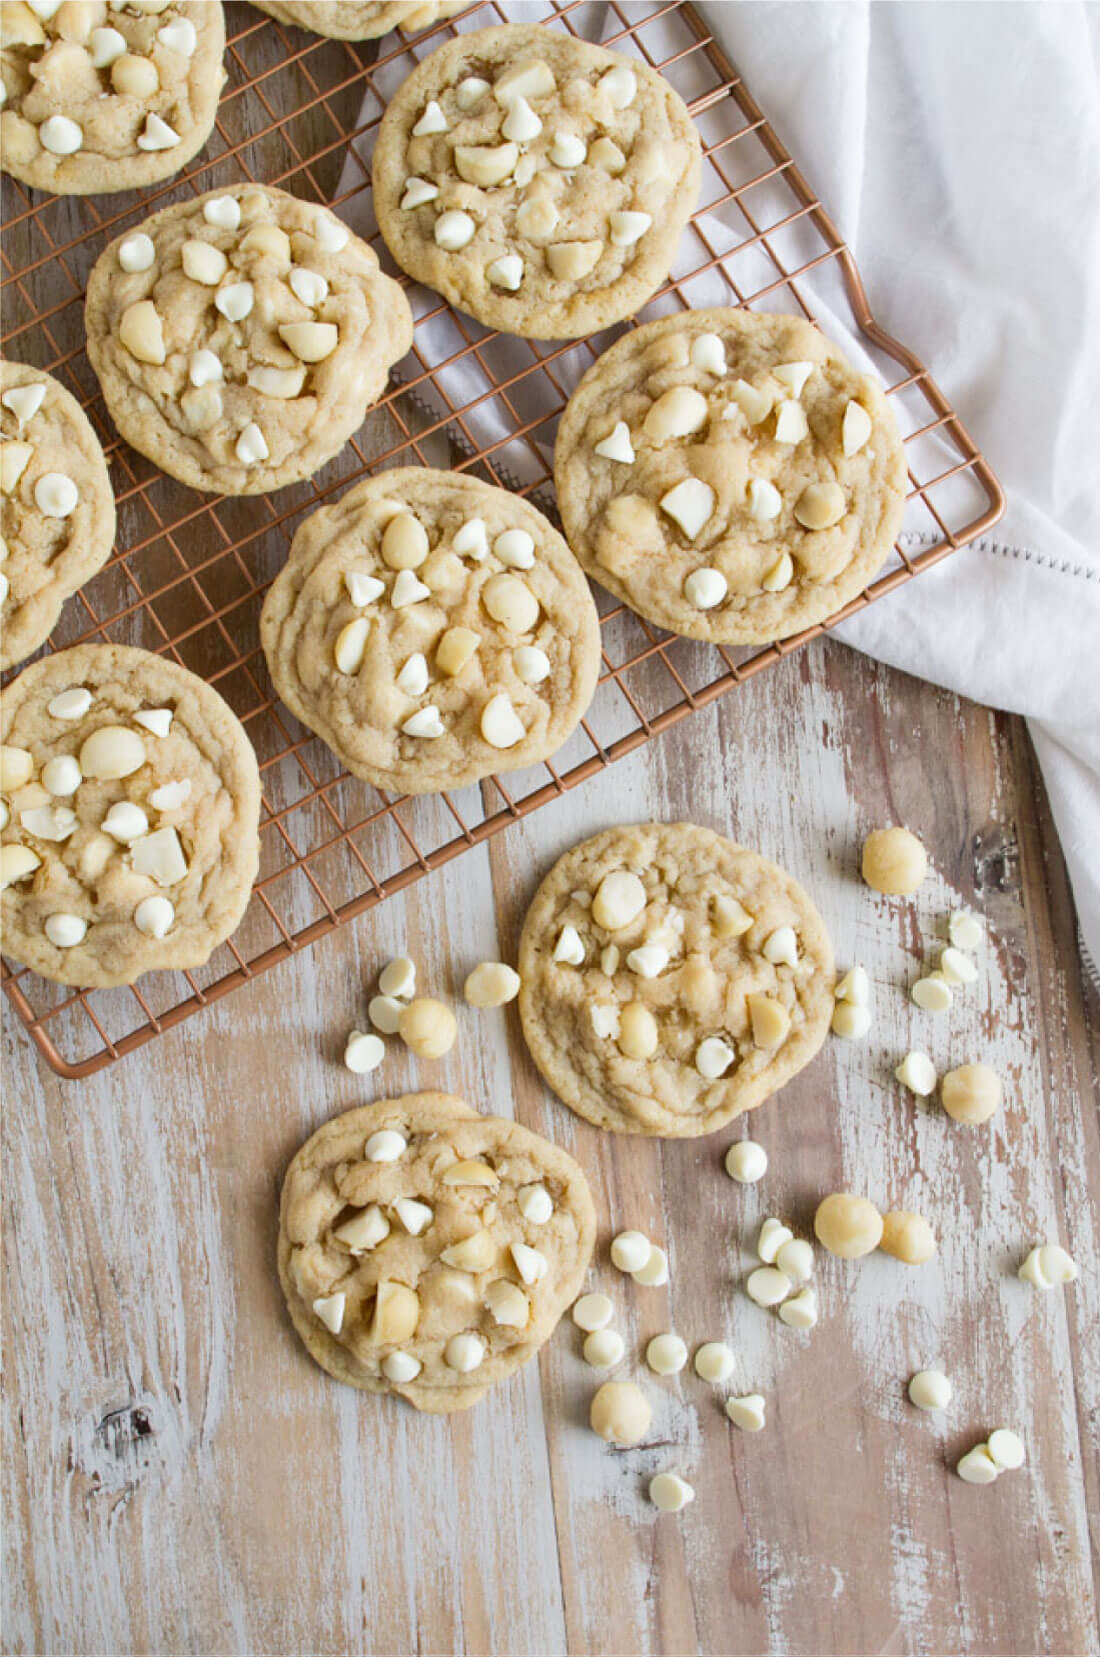 You won't find a better White Chocolate Macadamia Nut Cookies recipe - rich and sweet, these will knock you off your feet from www.thirtyhandmadedays.com